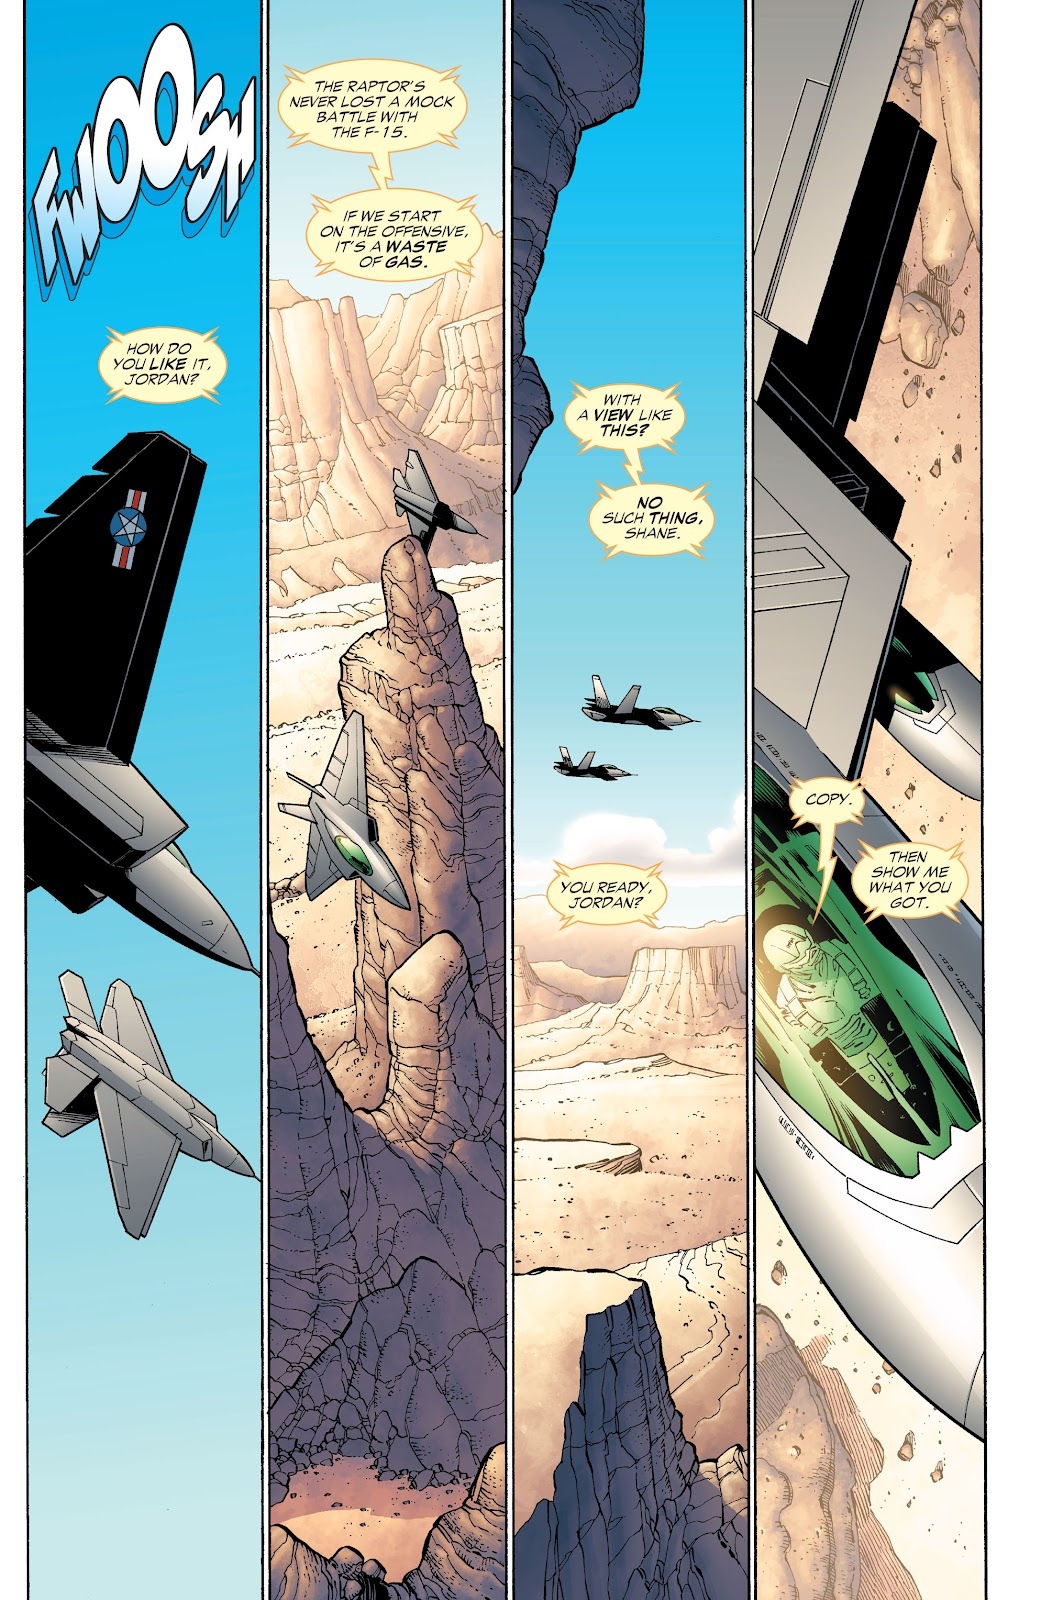 Read online Green Lantern by Geoff Johns comic -  Issue # TPB 1 (Part 4) - 1